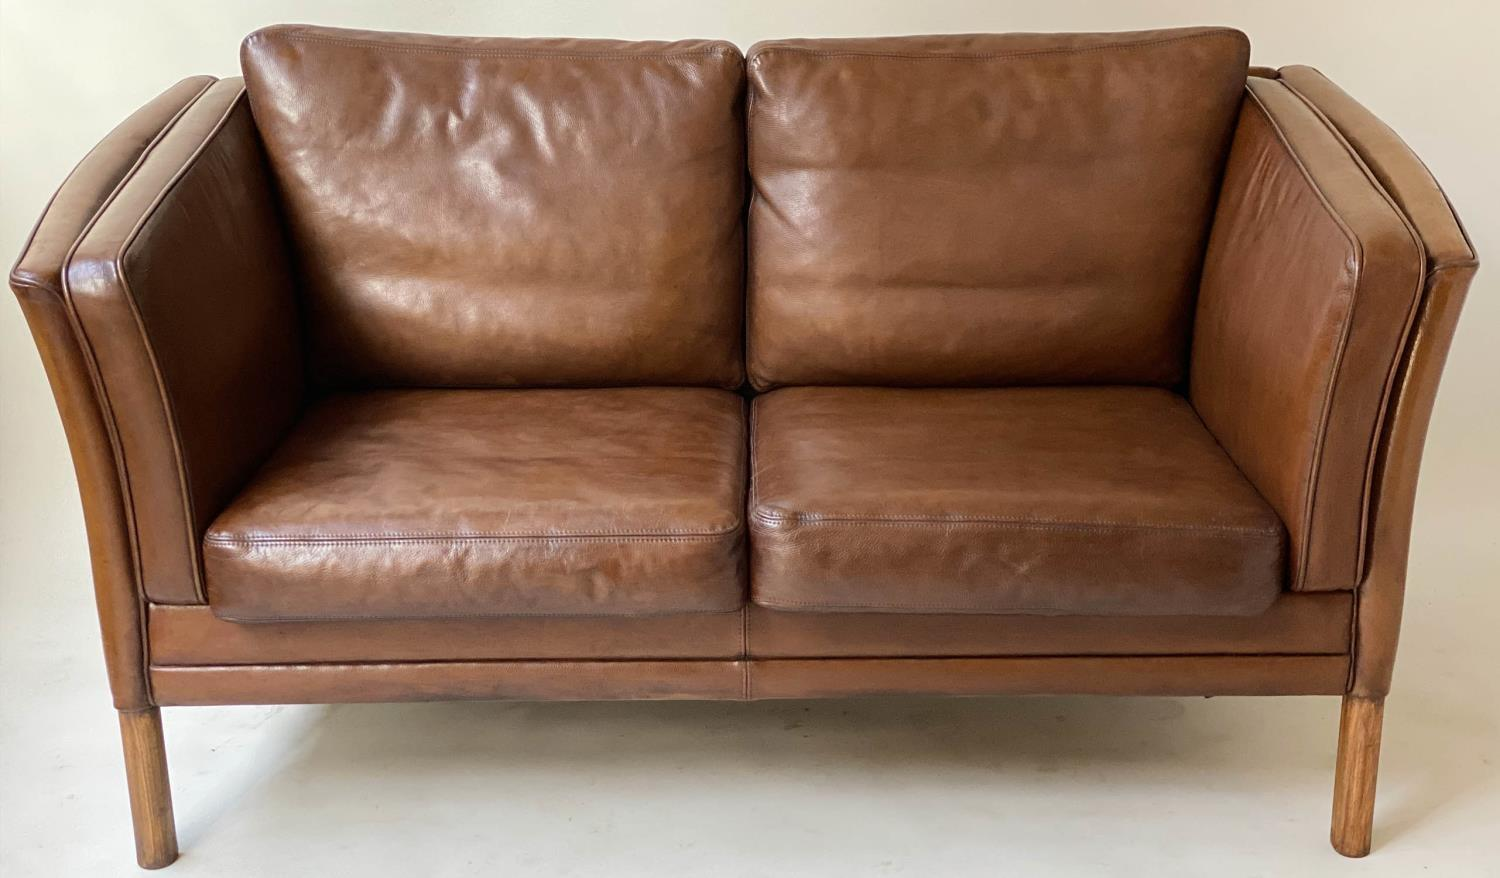 SOFA, teak, 1970's Danish style grained tan leather with two cushion seat and back, 150cm W.